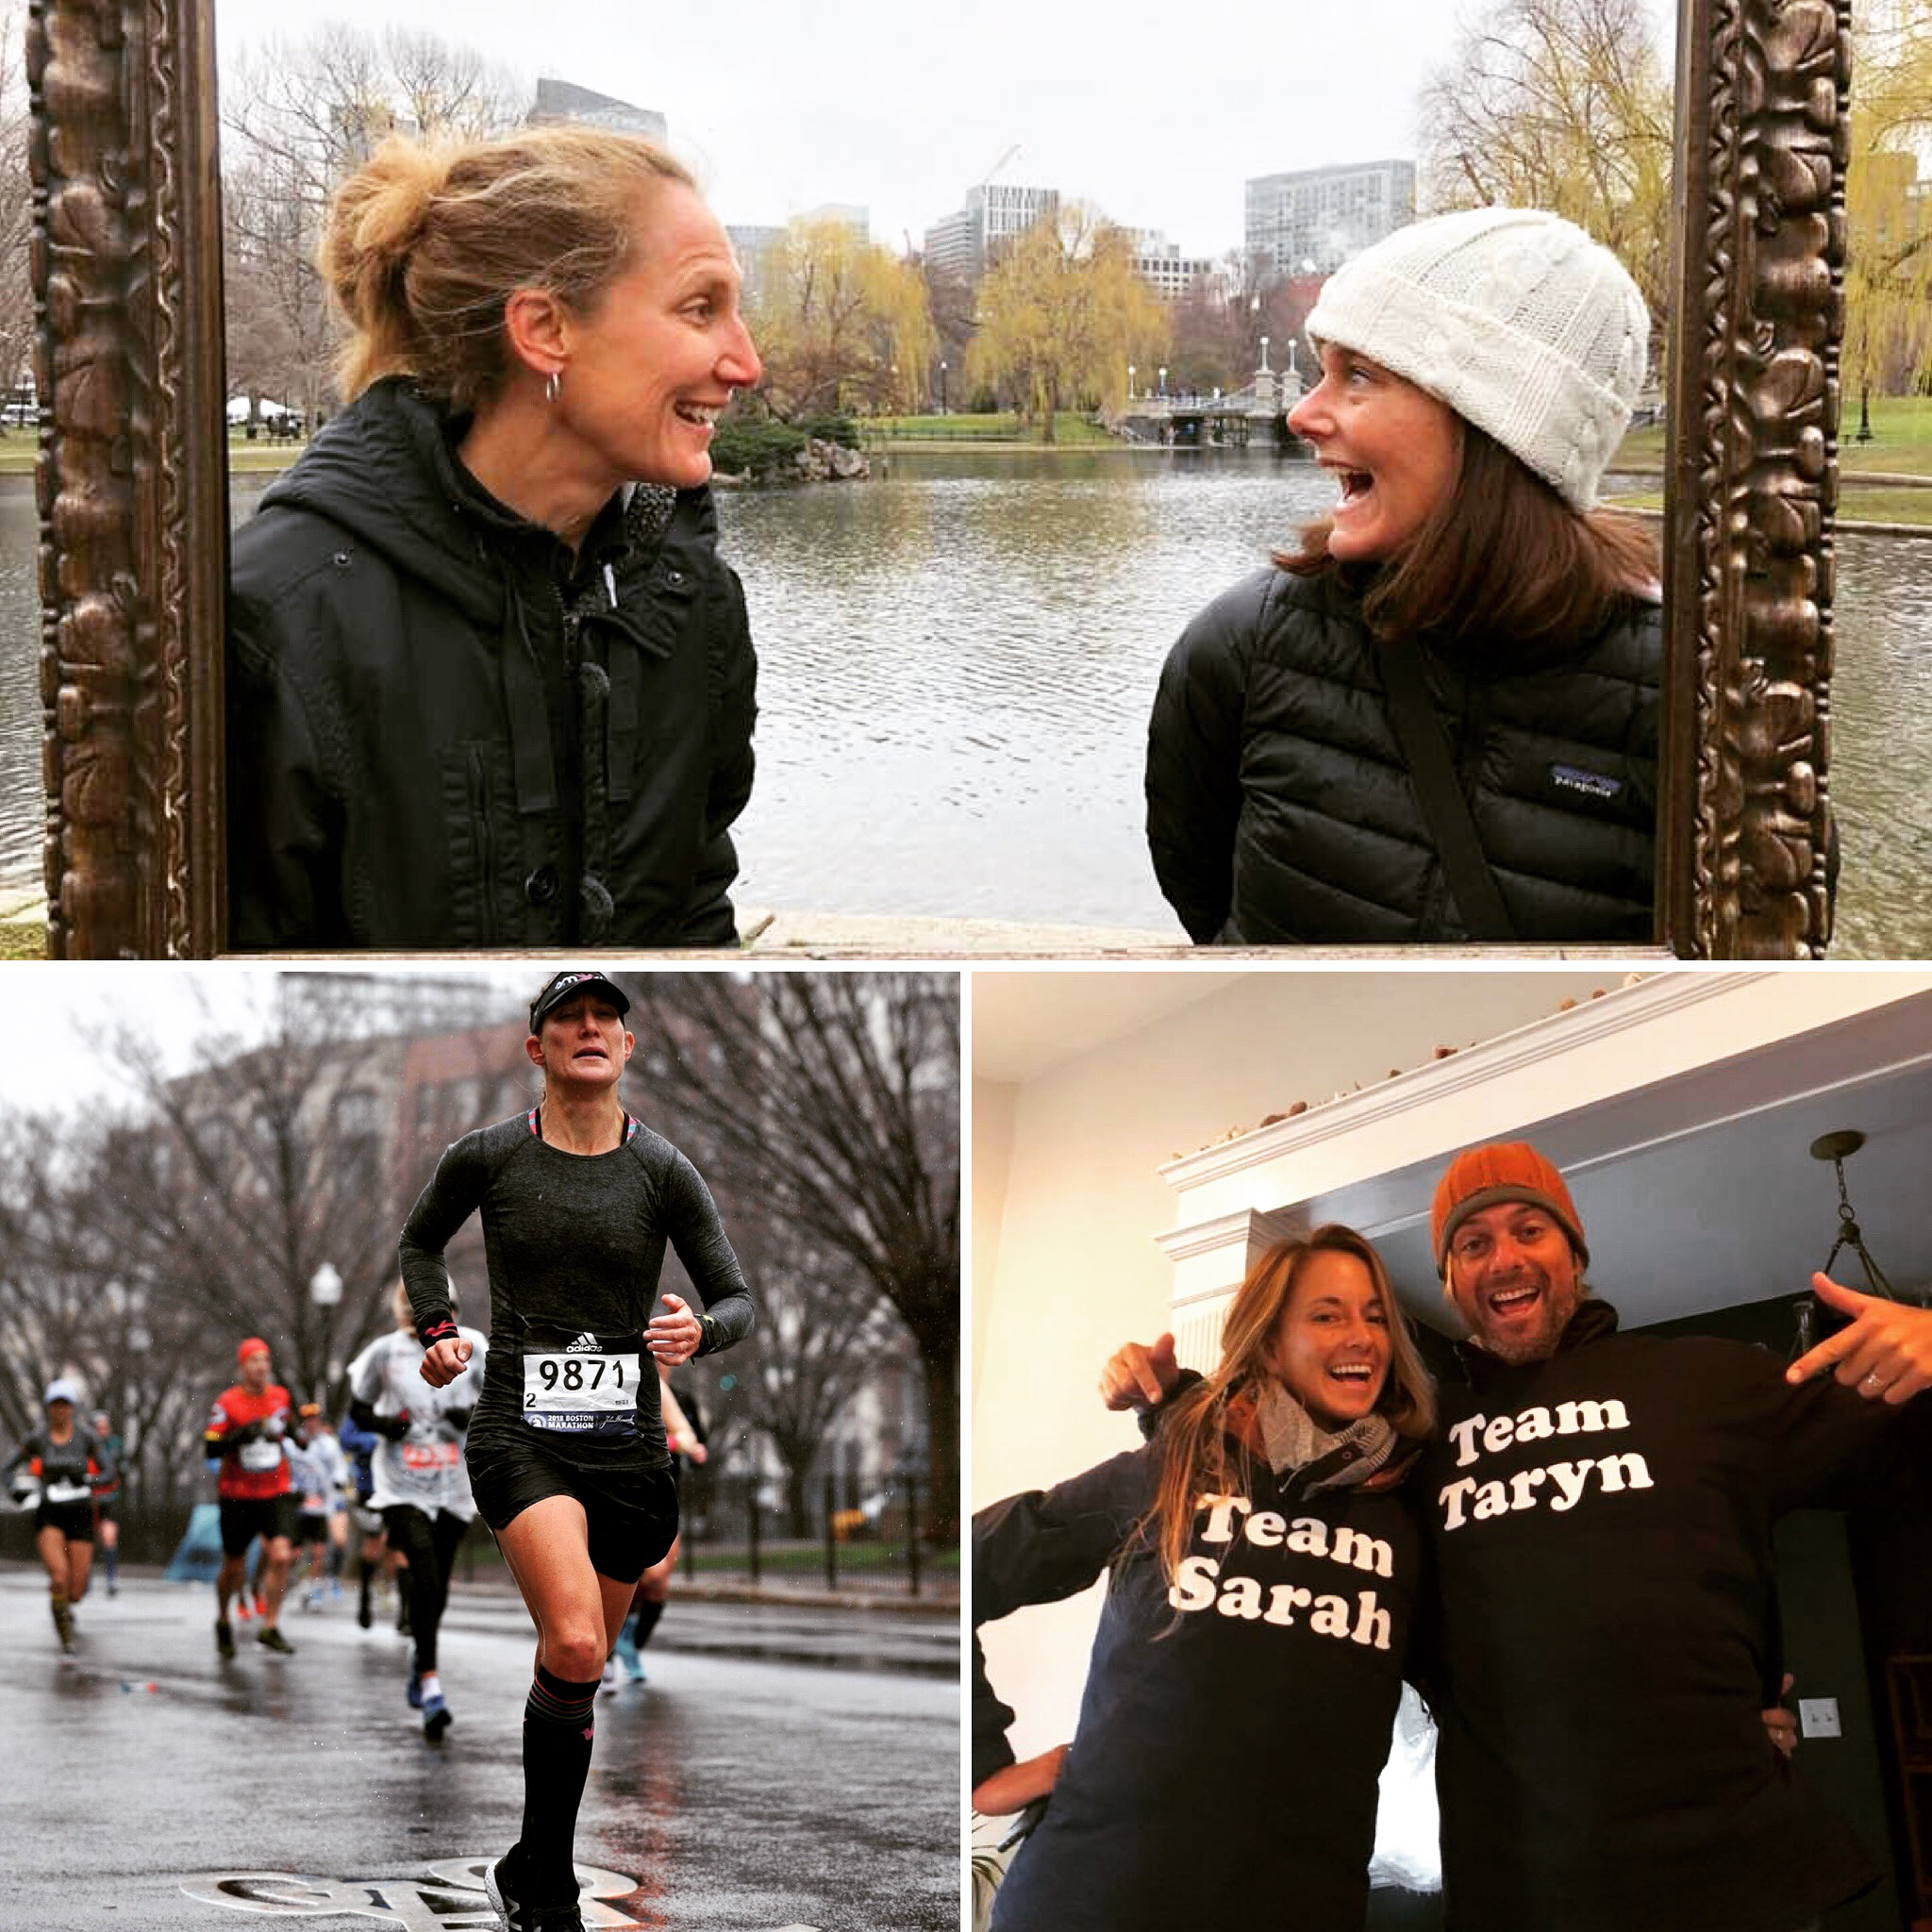 Top, yours truly and my sister Sarah, AKA, two Boston marathon 2018 finishers. Bottom left, a soaked runner nearly to the finish. Bottom right, my brother Bo and his AMAZING wife, Carly, who flew in from Nicaragua to watch us run. The photographers were my fantastic father and step mom, Sally, the ones who started all of the running in our family.